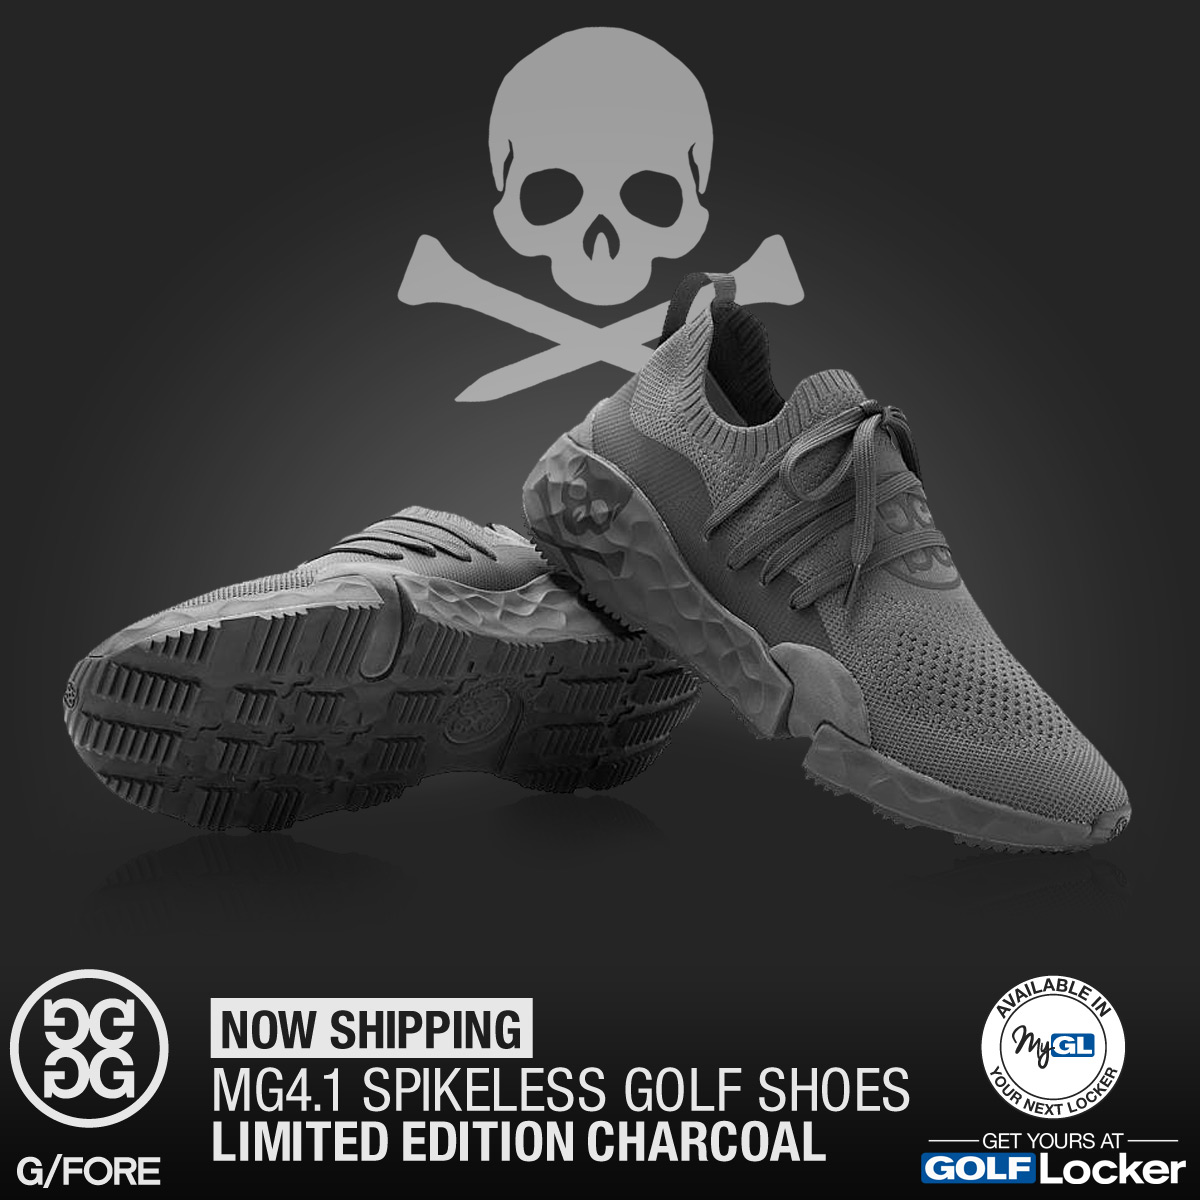 G/FORE MG4.1 Spikeless Golf Shoes - Limited Edition Charcoal